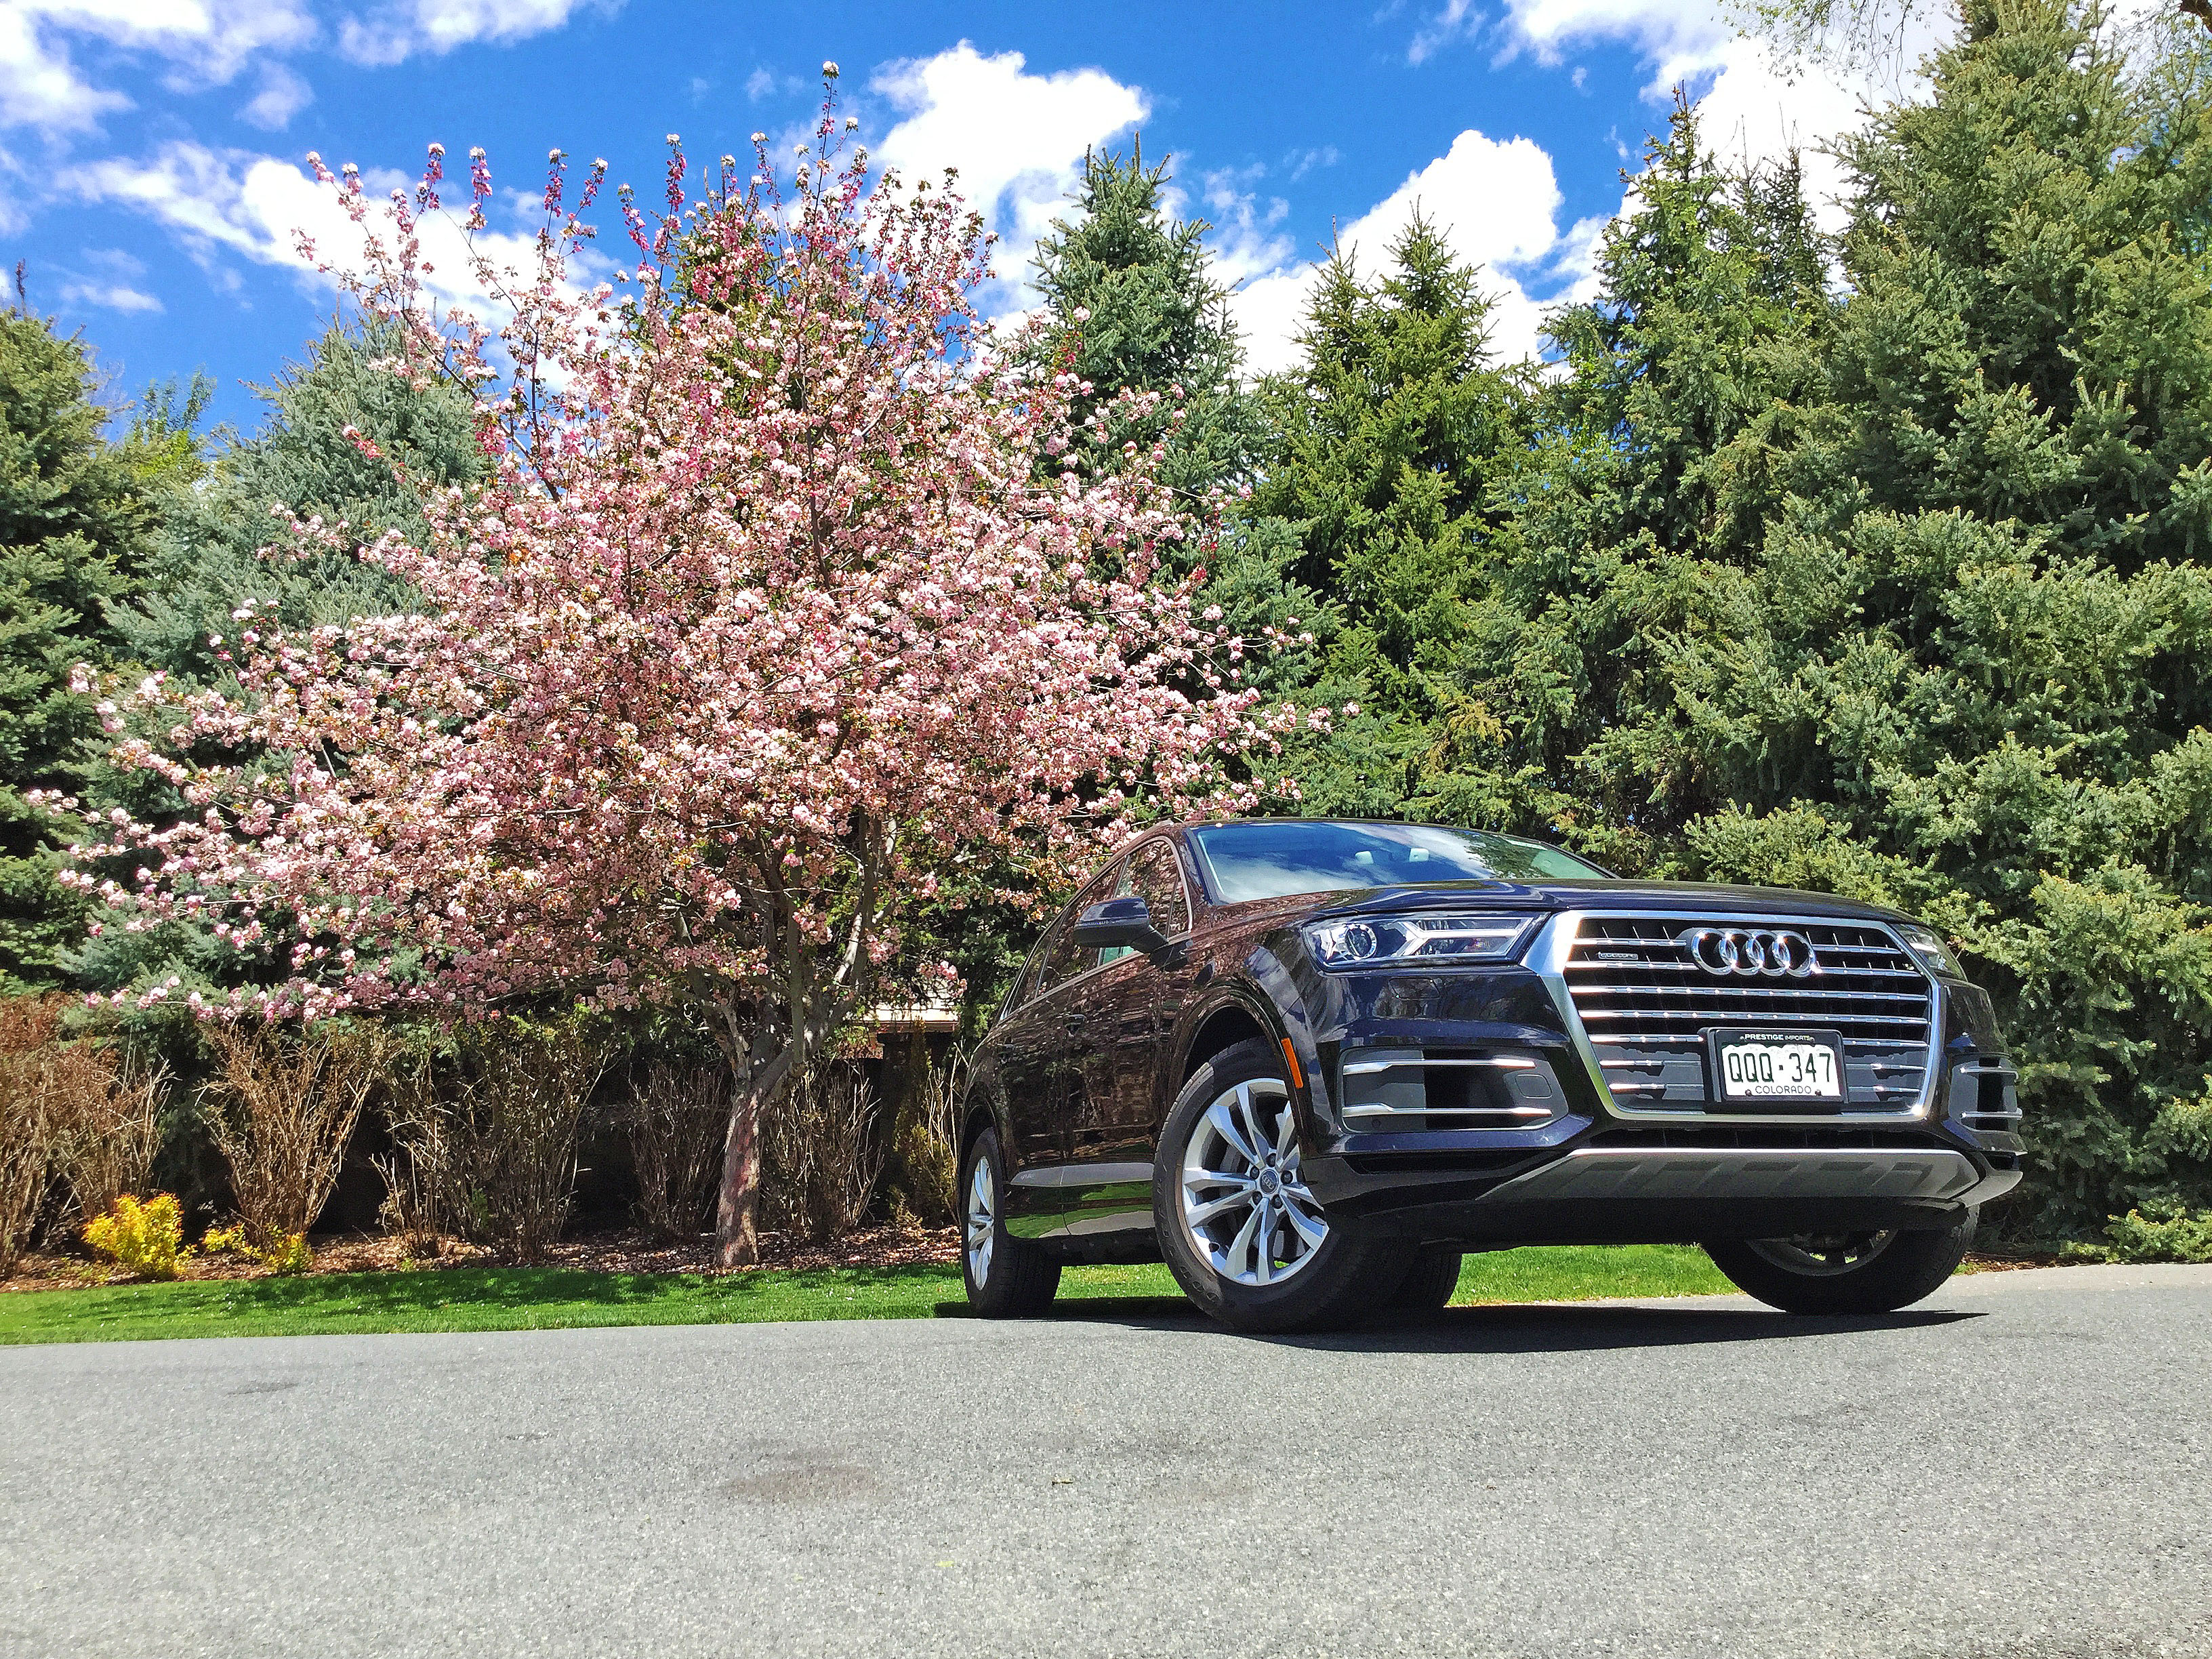 Audi Cherry Hill >> Cherry Hills Village, Colorado and the Audi Q7